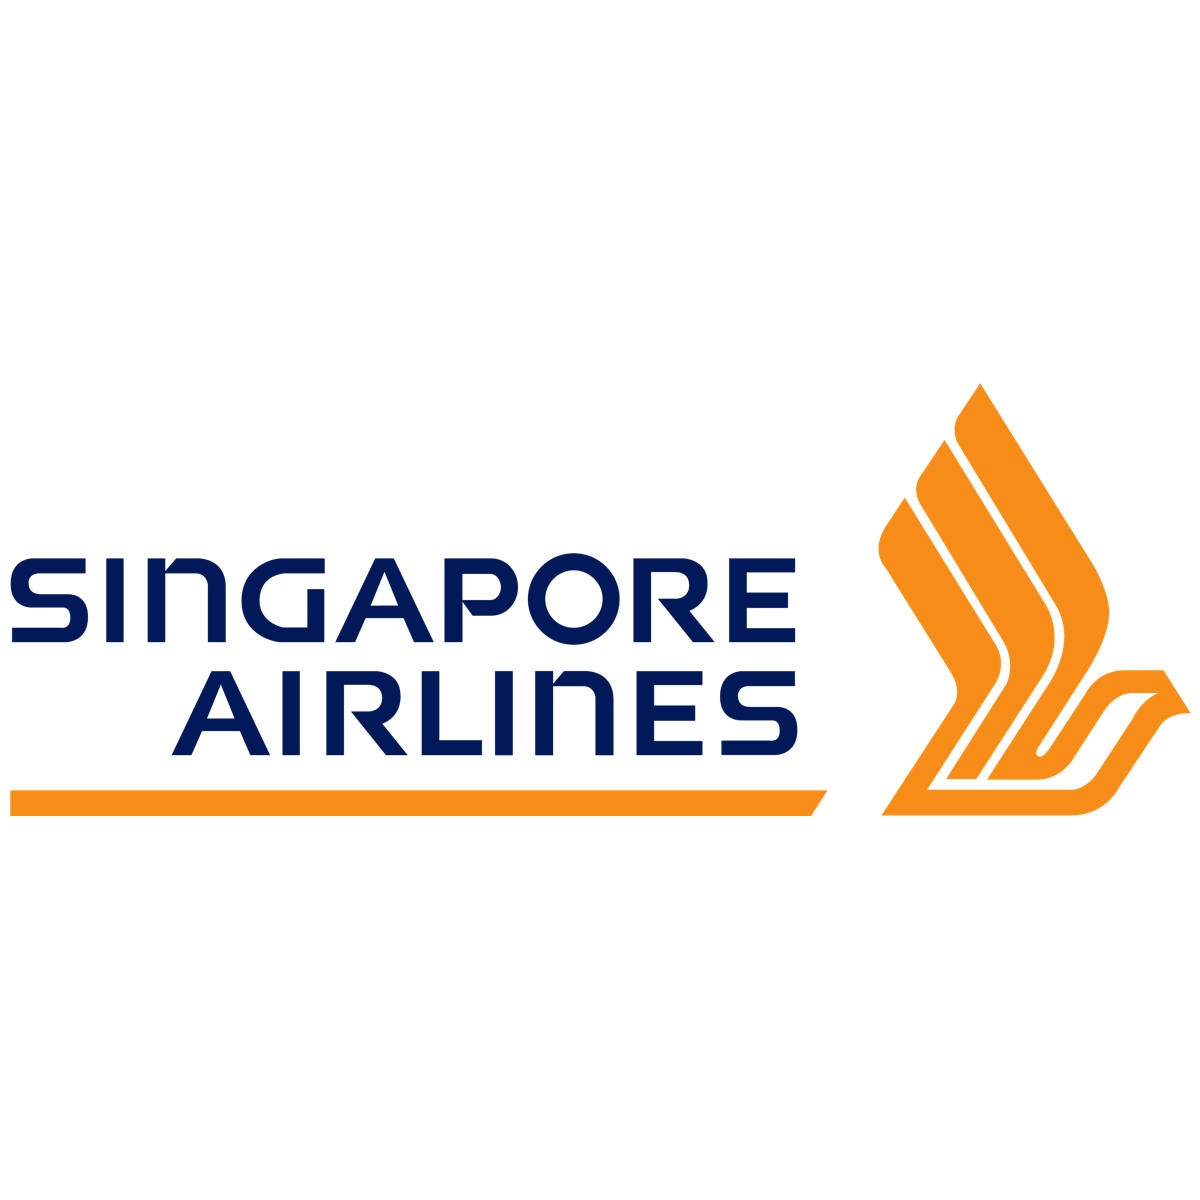 Singapore Airlines (SIA SP) - Maybank Kim Eng 2017-11-09: 2Q18 Results Respectable, But Valuations Lofty